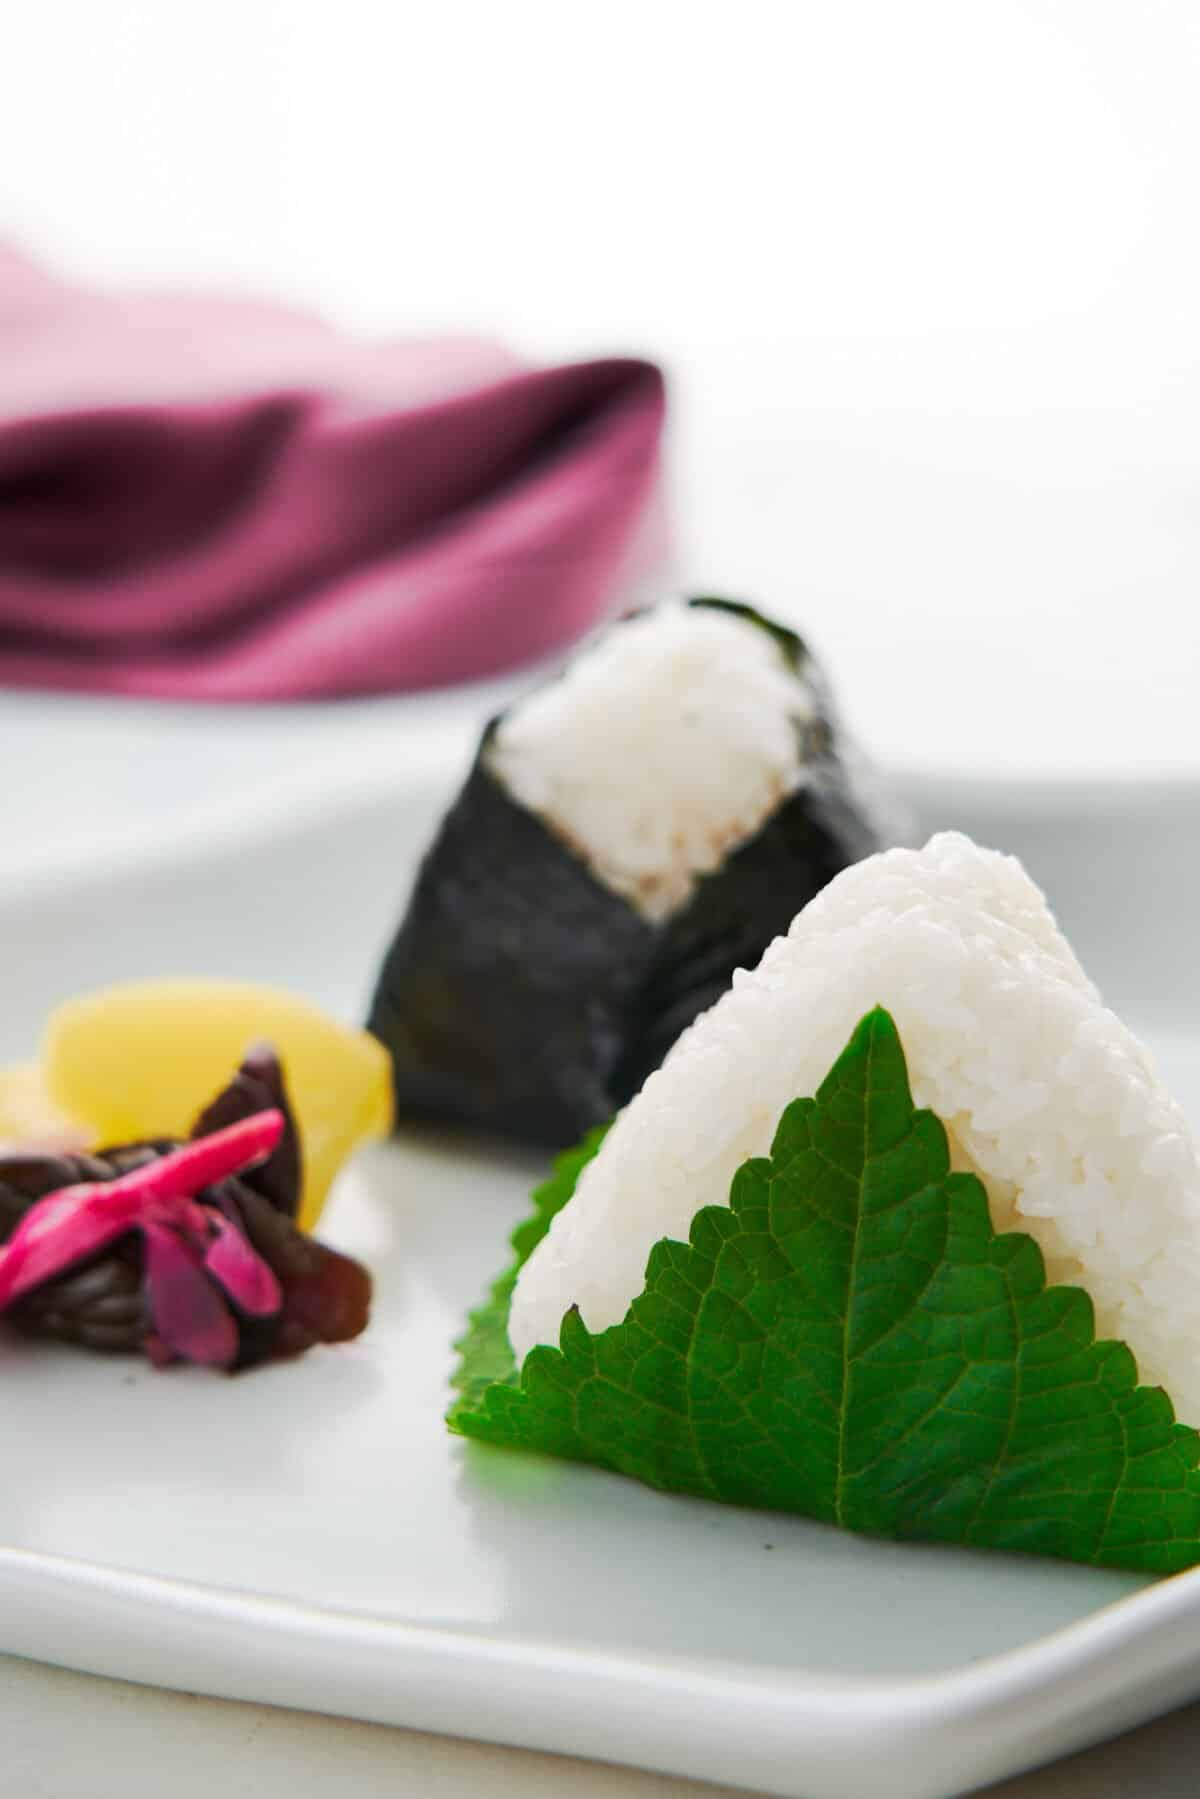 Tuna Mayo is a modern classic filling for onigiri rice balls that can be made with just canned tuna, mayonnaise and soy sauce. Learn everything you need to know to make these triangular Tuna Mayo Onigiri with this recipe.